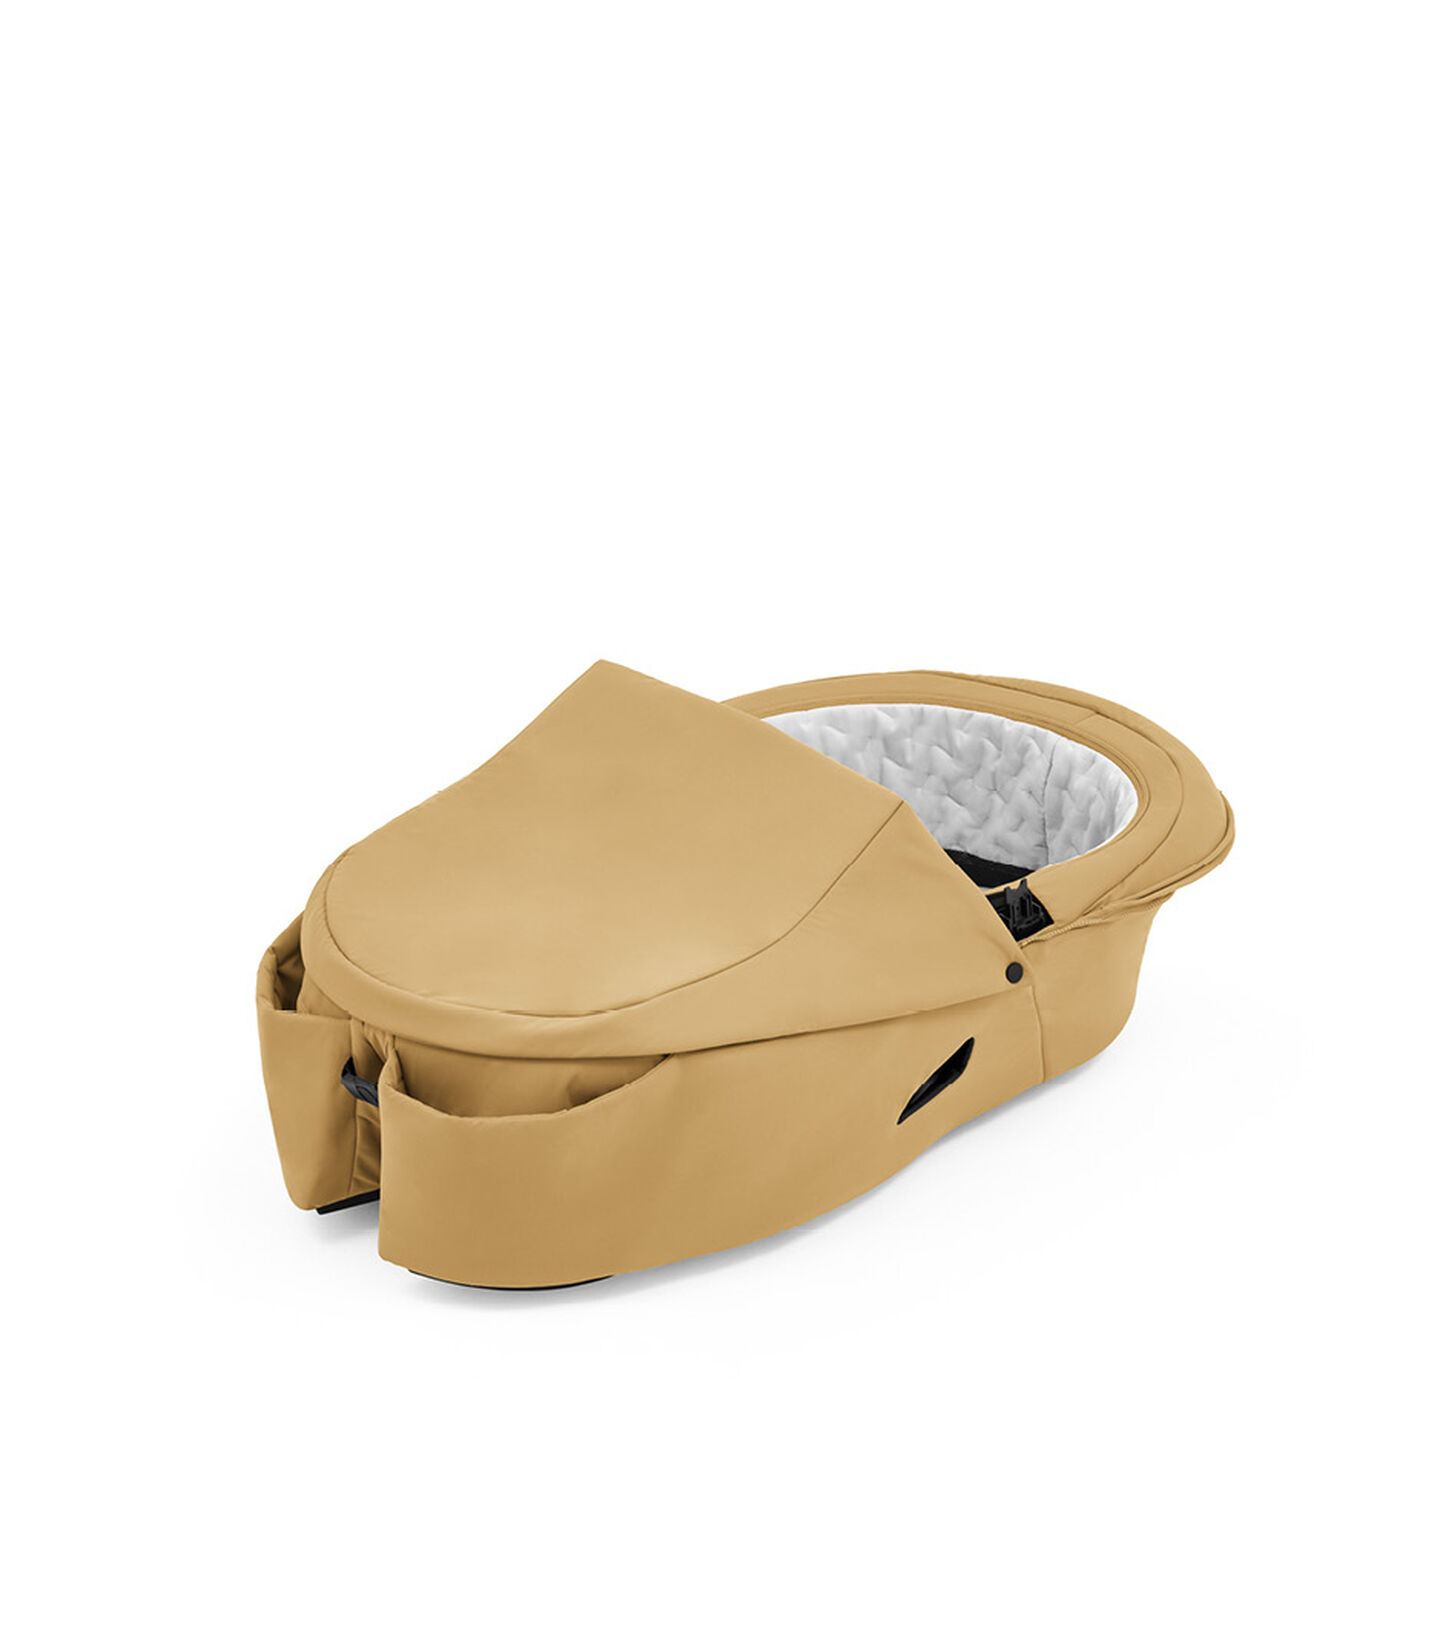 Stokke® Xplory® X Carry Cot Golden Yellow, Golden Yellow, mainview view 2